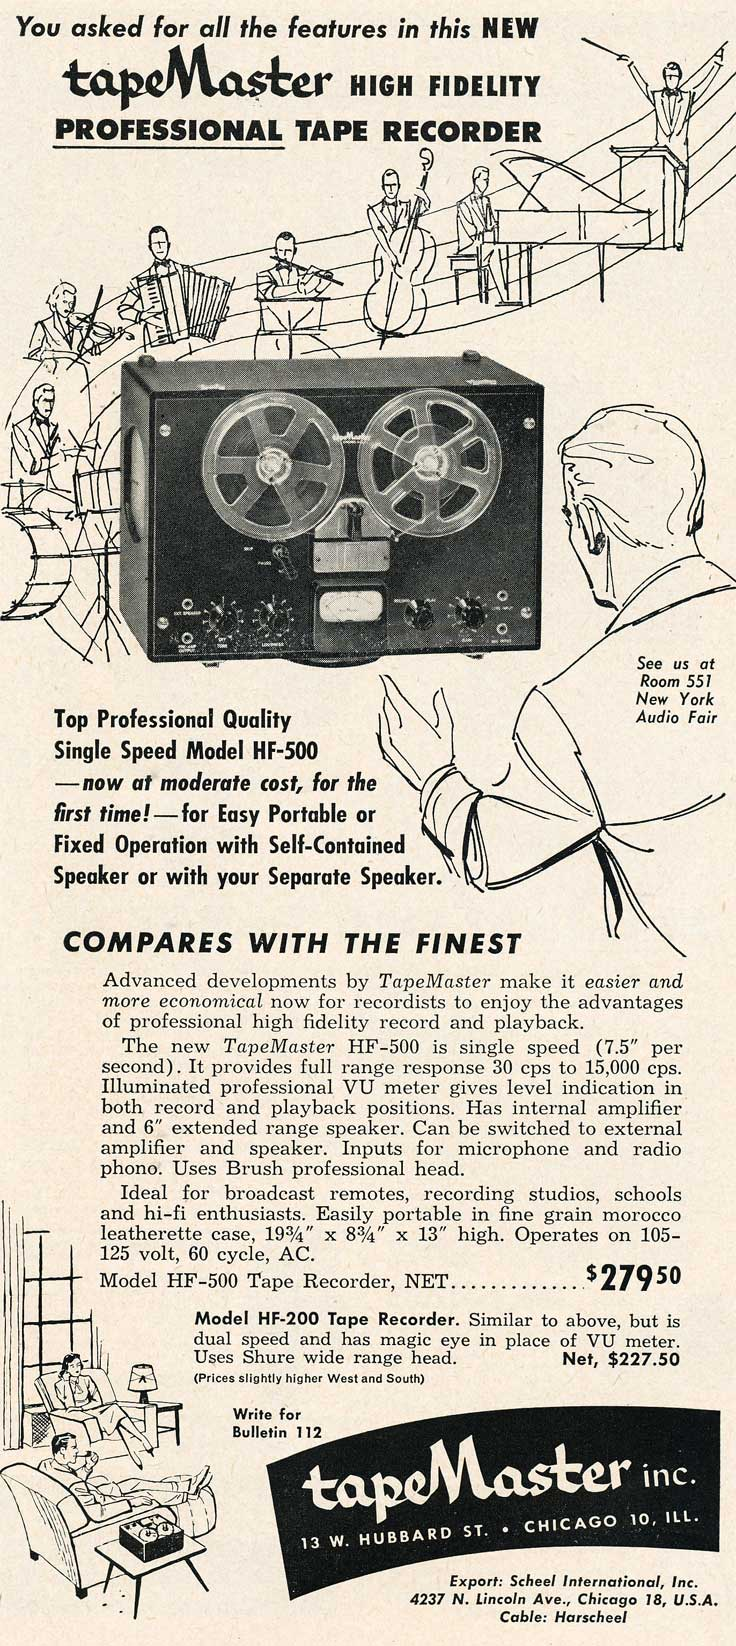 1953 ad for Tapemaster reel tape equipment in Reel2ReelTexas.com's vintage recording collection